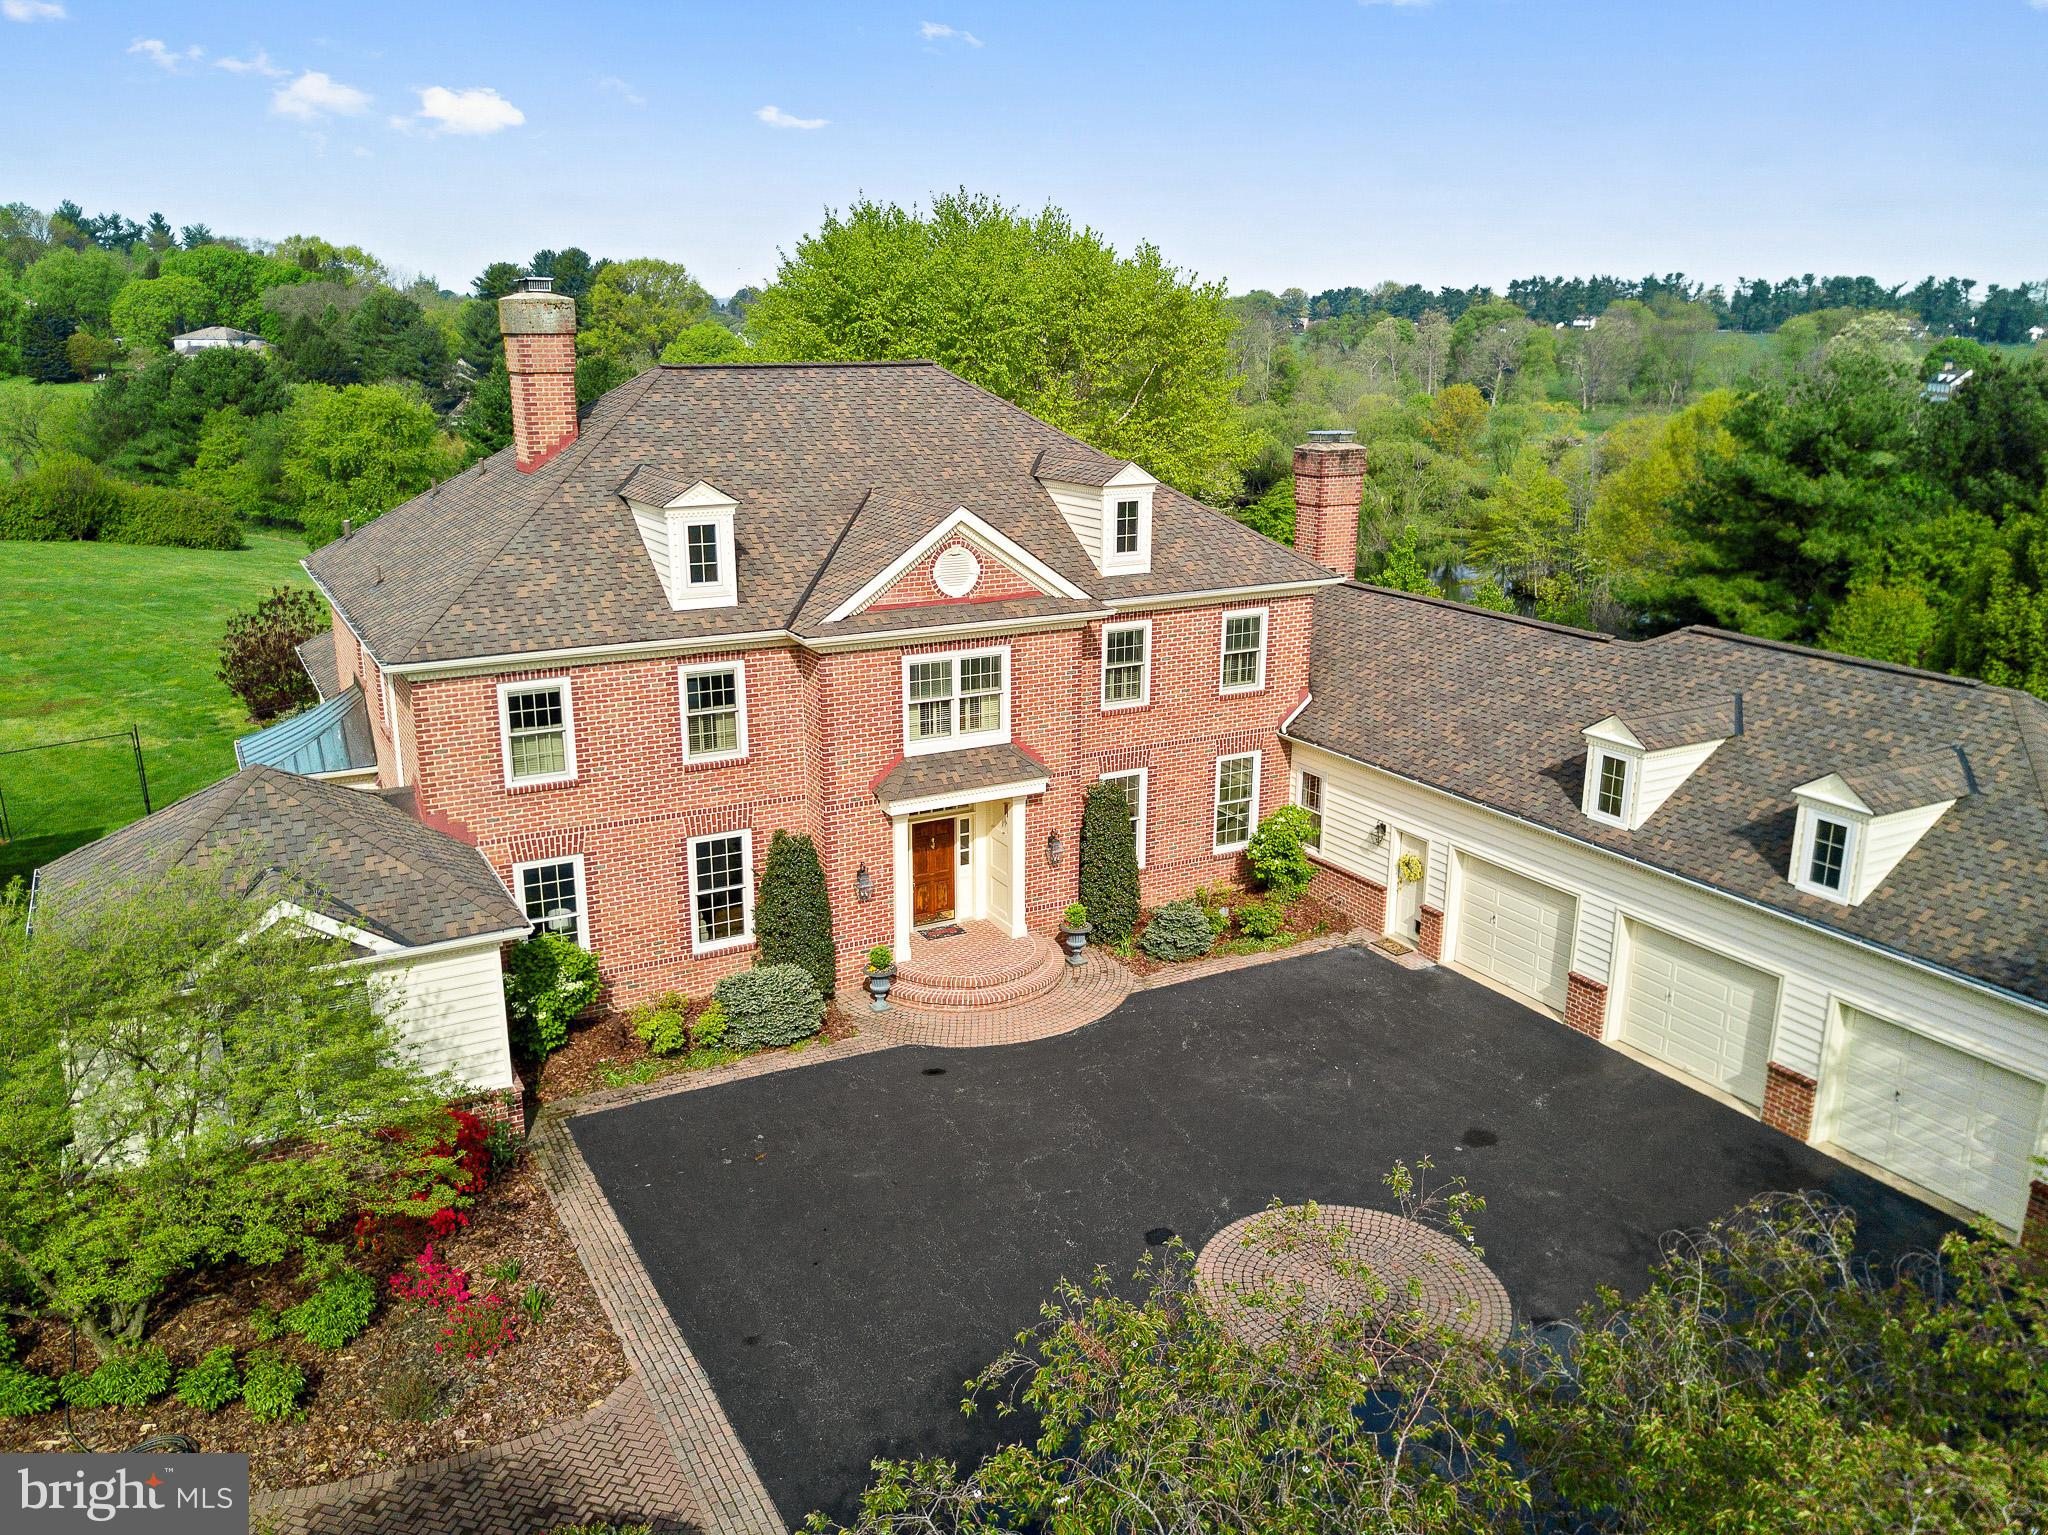 1022 LAMBOURNE ROAD, WEST CHESTER, PA 19382